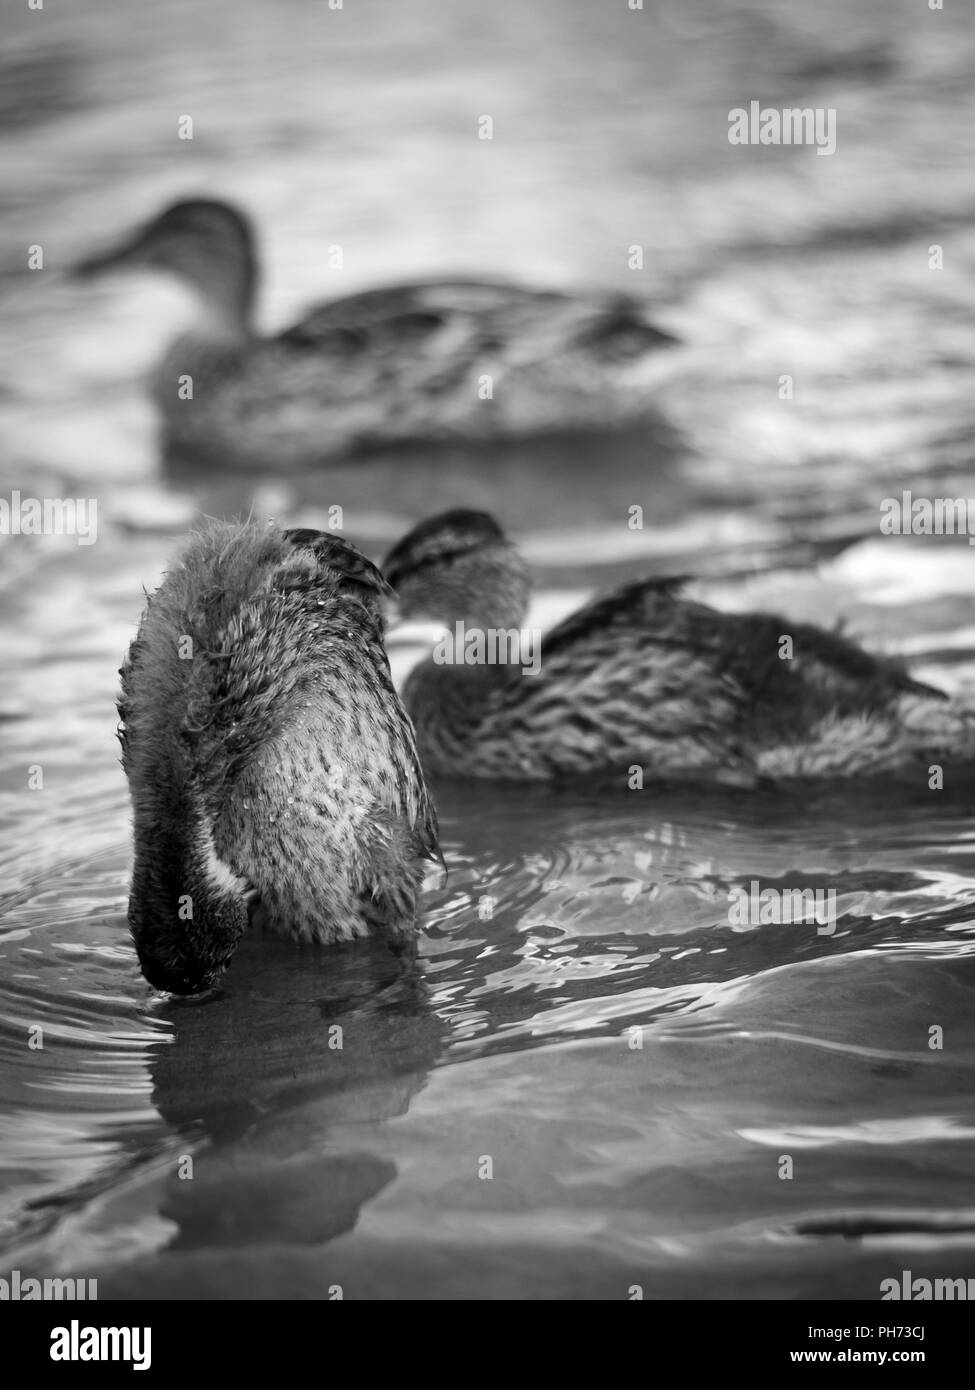 A duck washing itself in front of two other ducks by the river Klarälven in Forshaga, Värmland, Sweden. - Stock Image